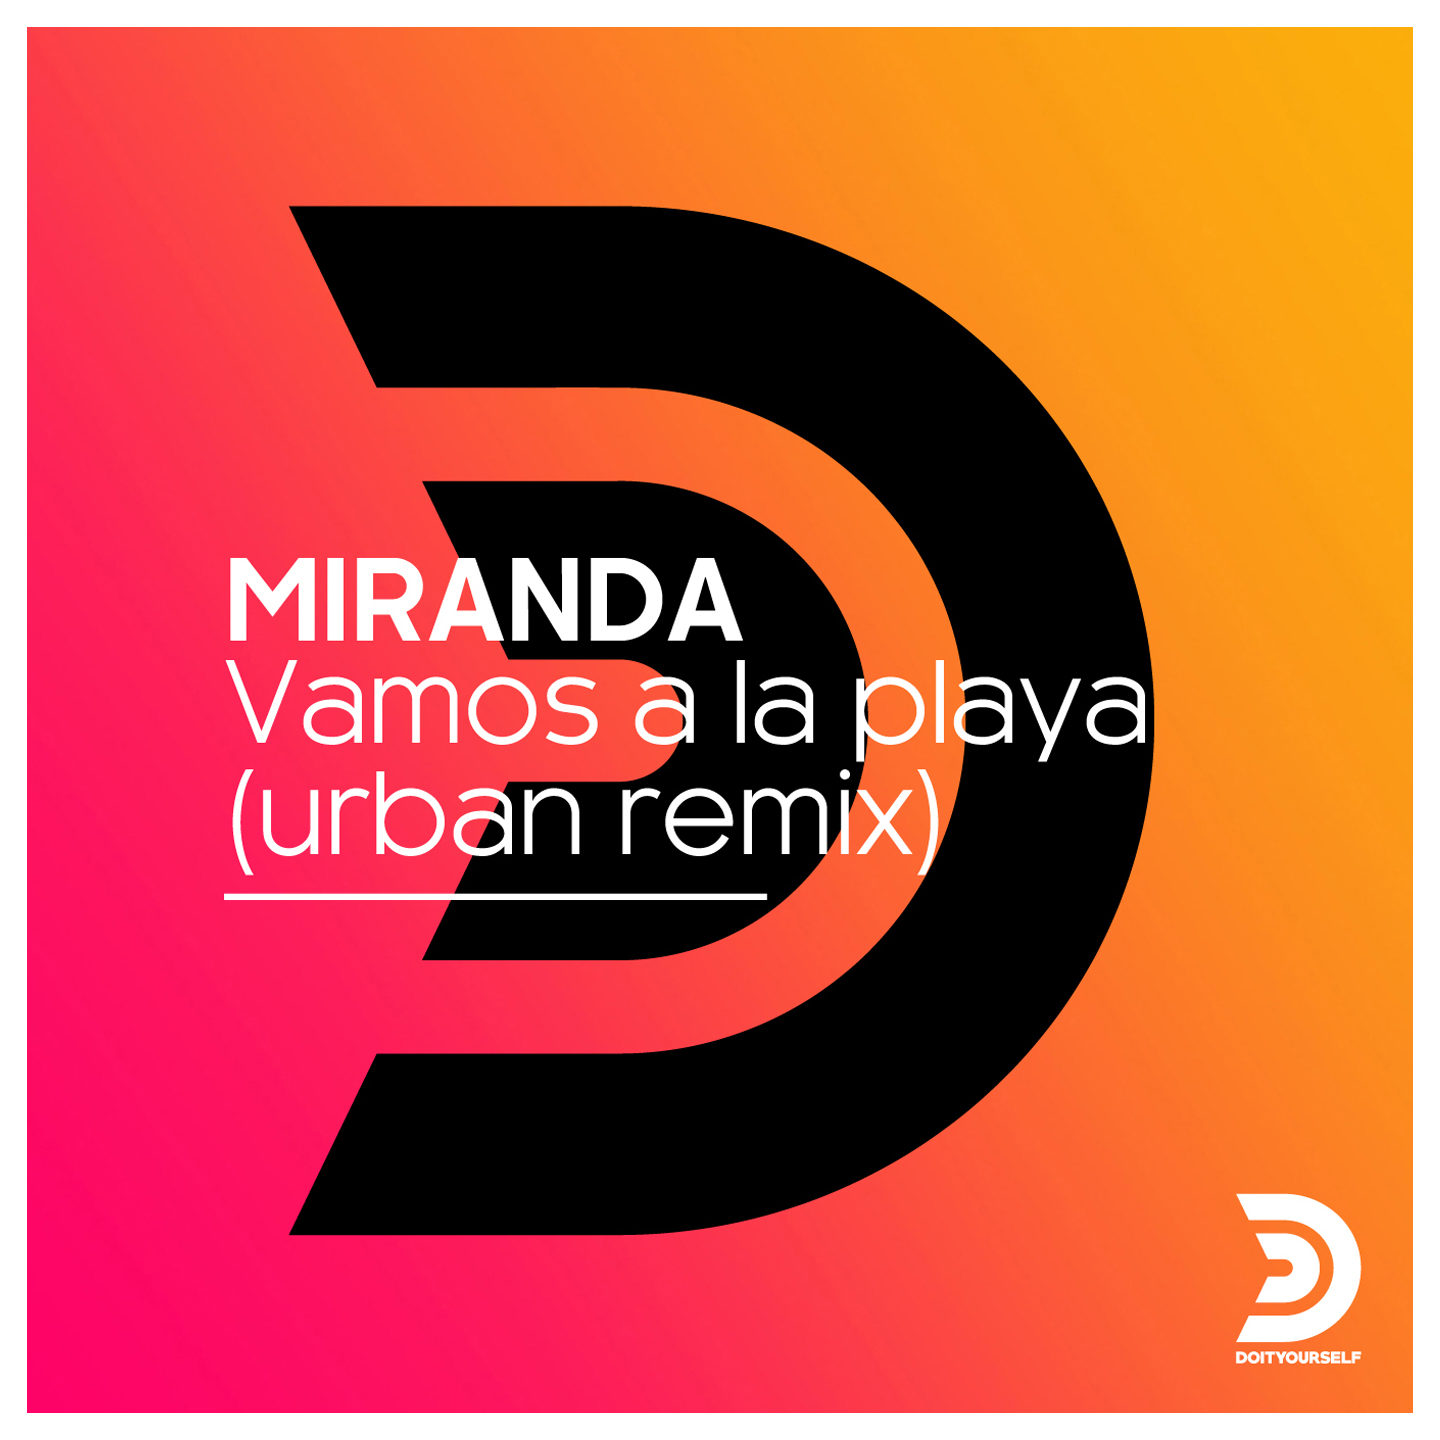 VAMOS A LA PLAYA (URBAN REMIX)